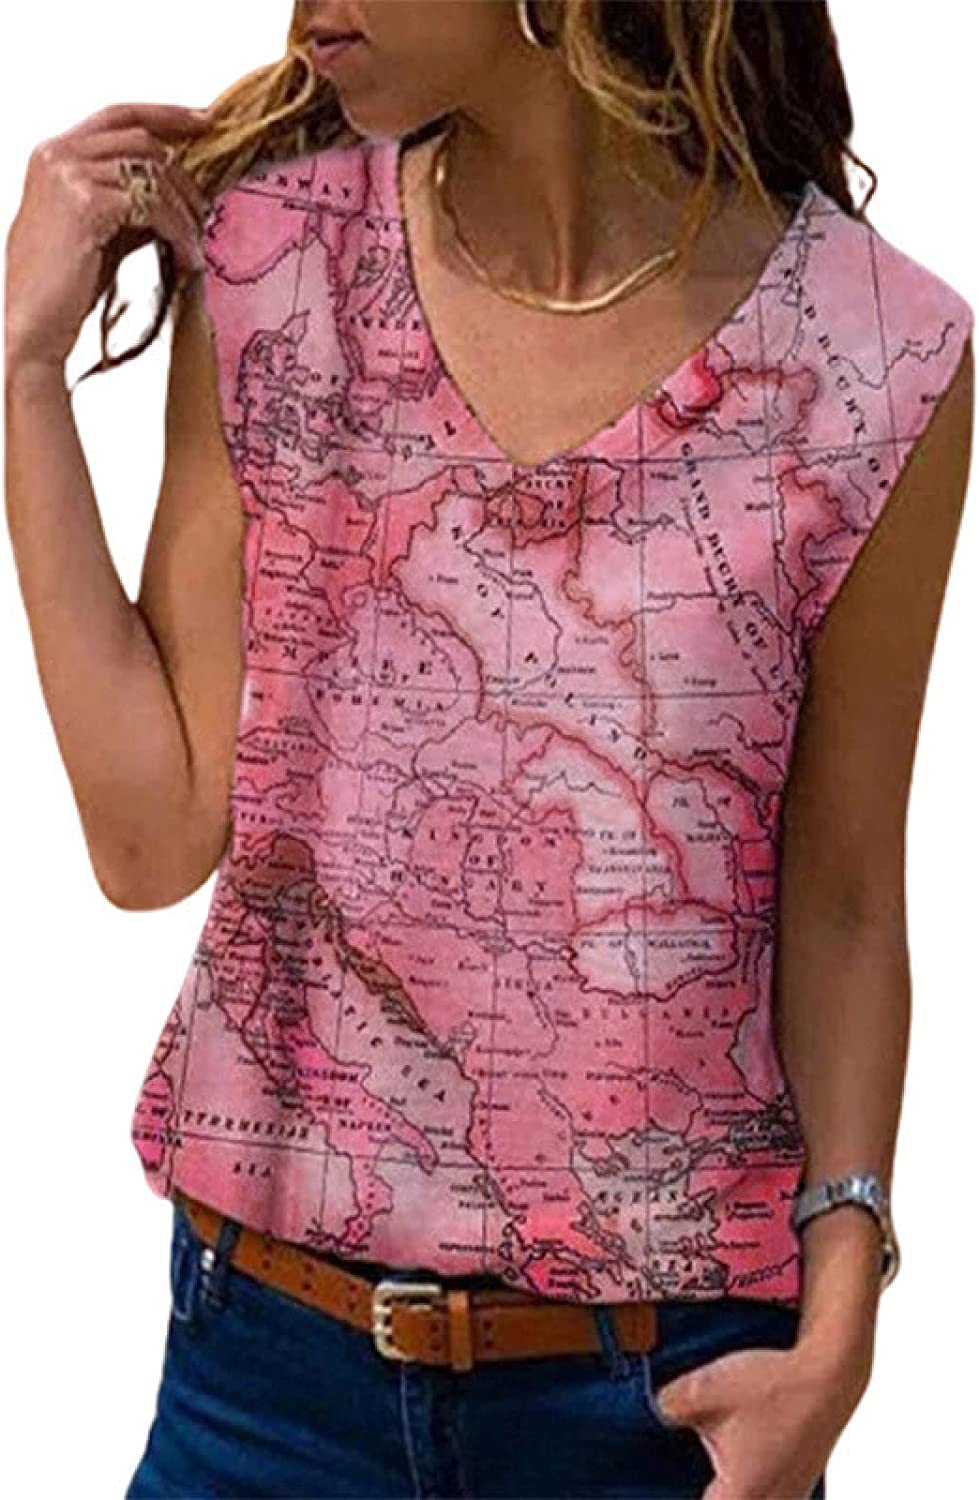 Womens T Shirts Loose Fit Women's V-Neck Printing Map Casual Fashion Vest Summer T-Shirt Tops